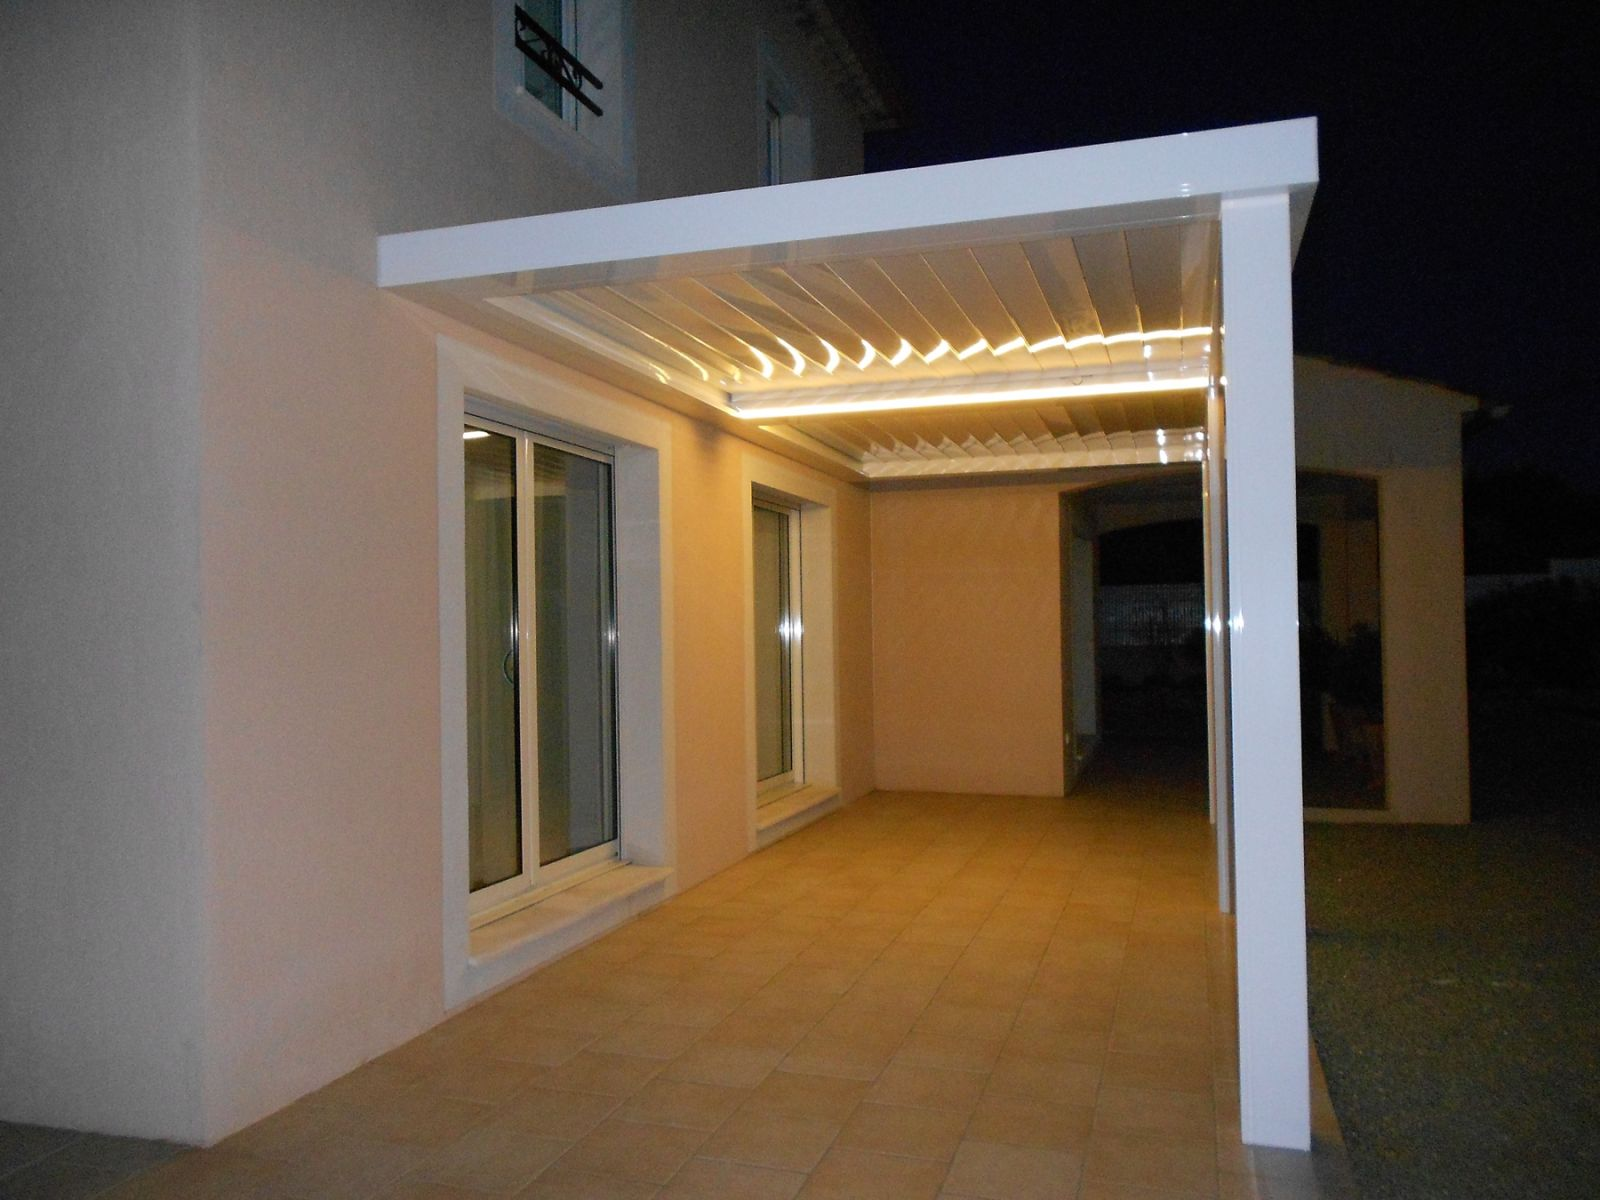 faire fabriquer et installer une pergolas bioclimatique sur mesure en aluminium marseille. Black Bedroom Furniture Sets. Home Design Ideas